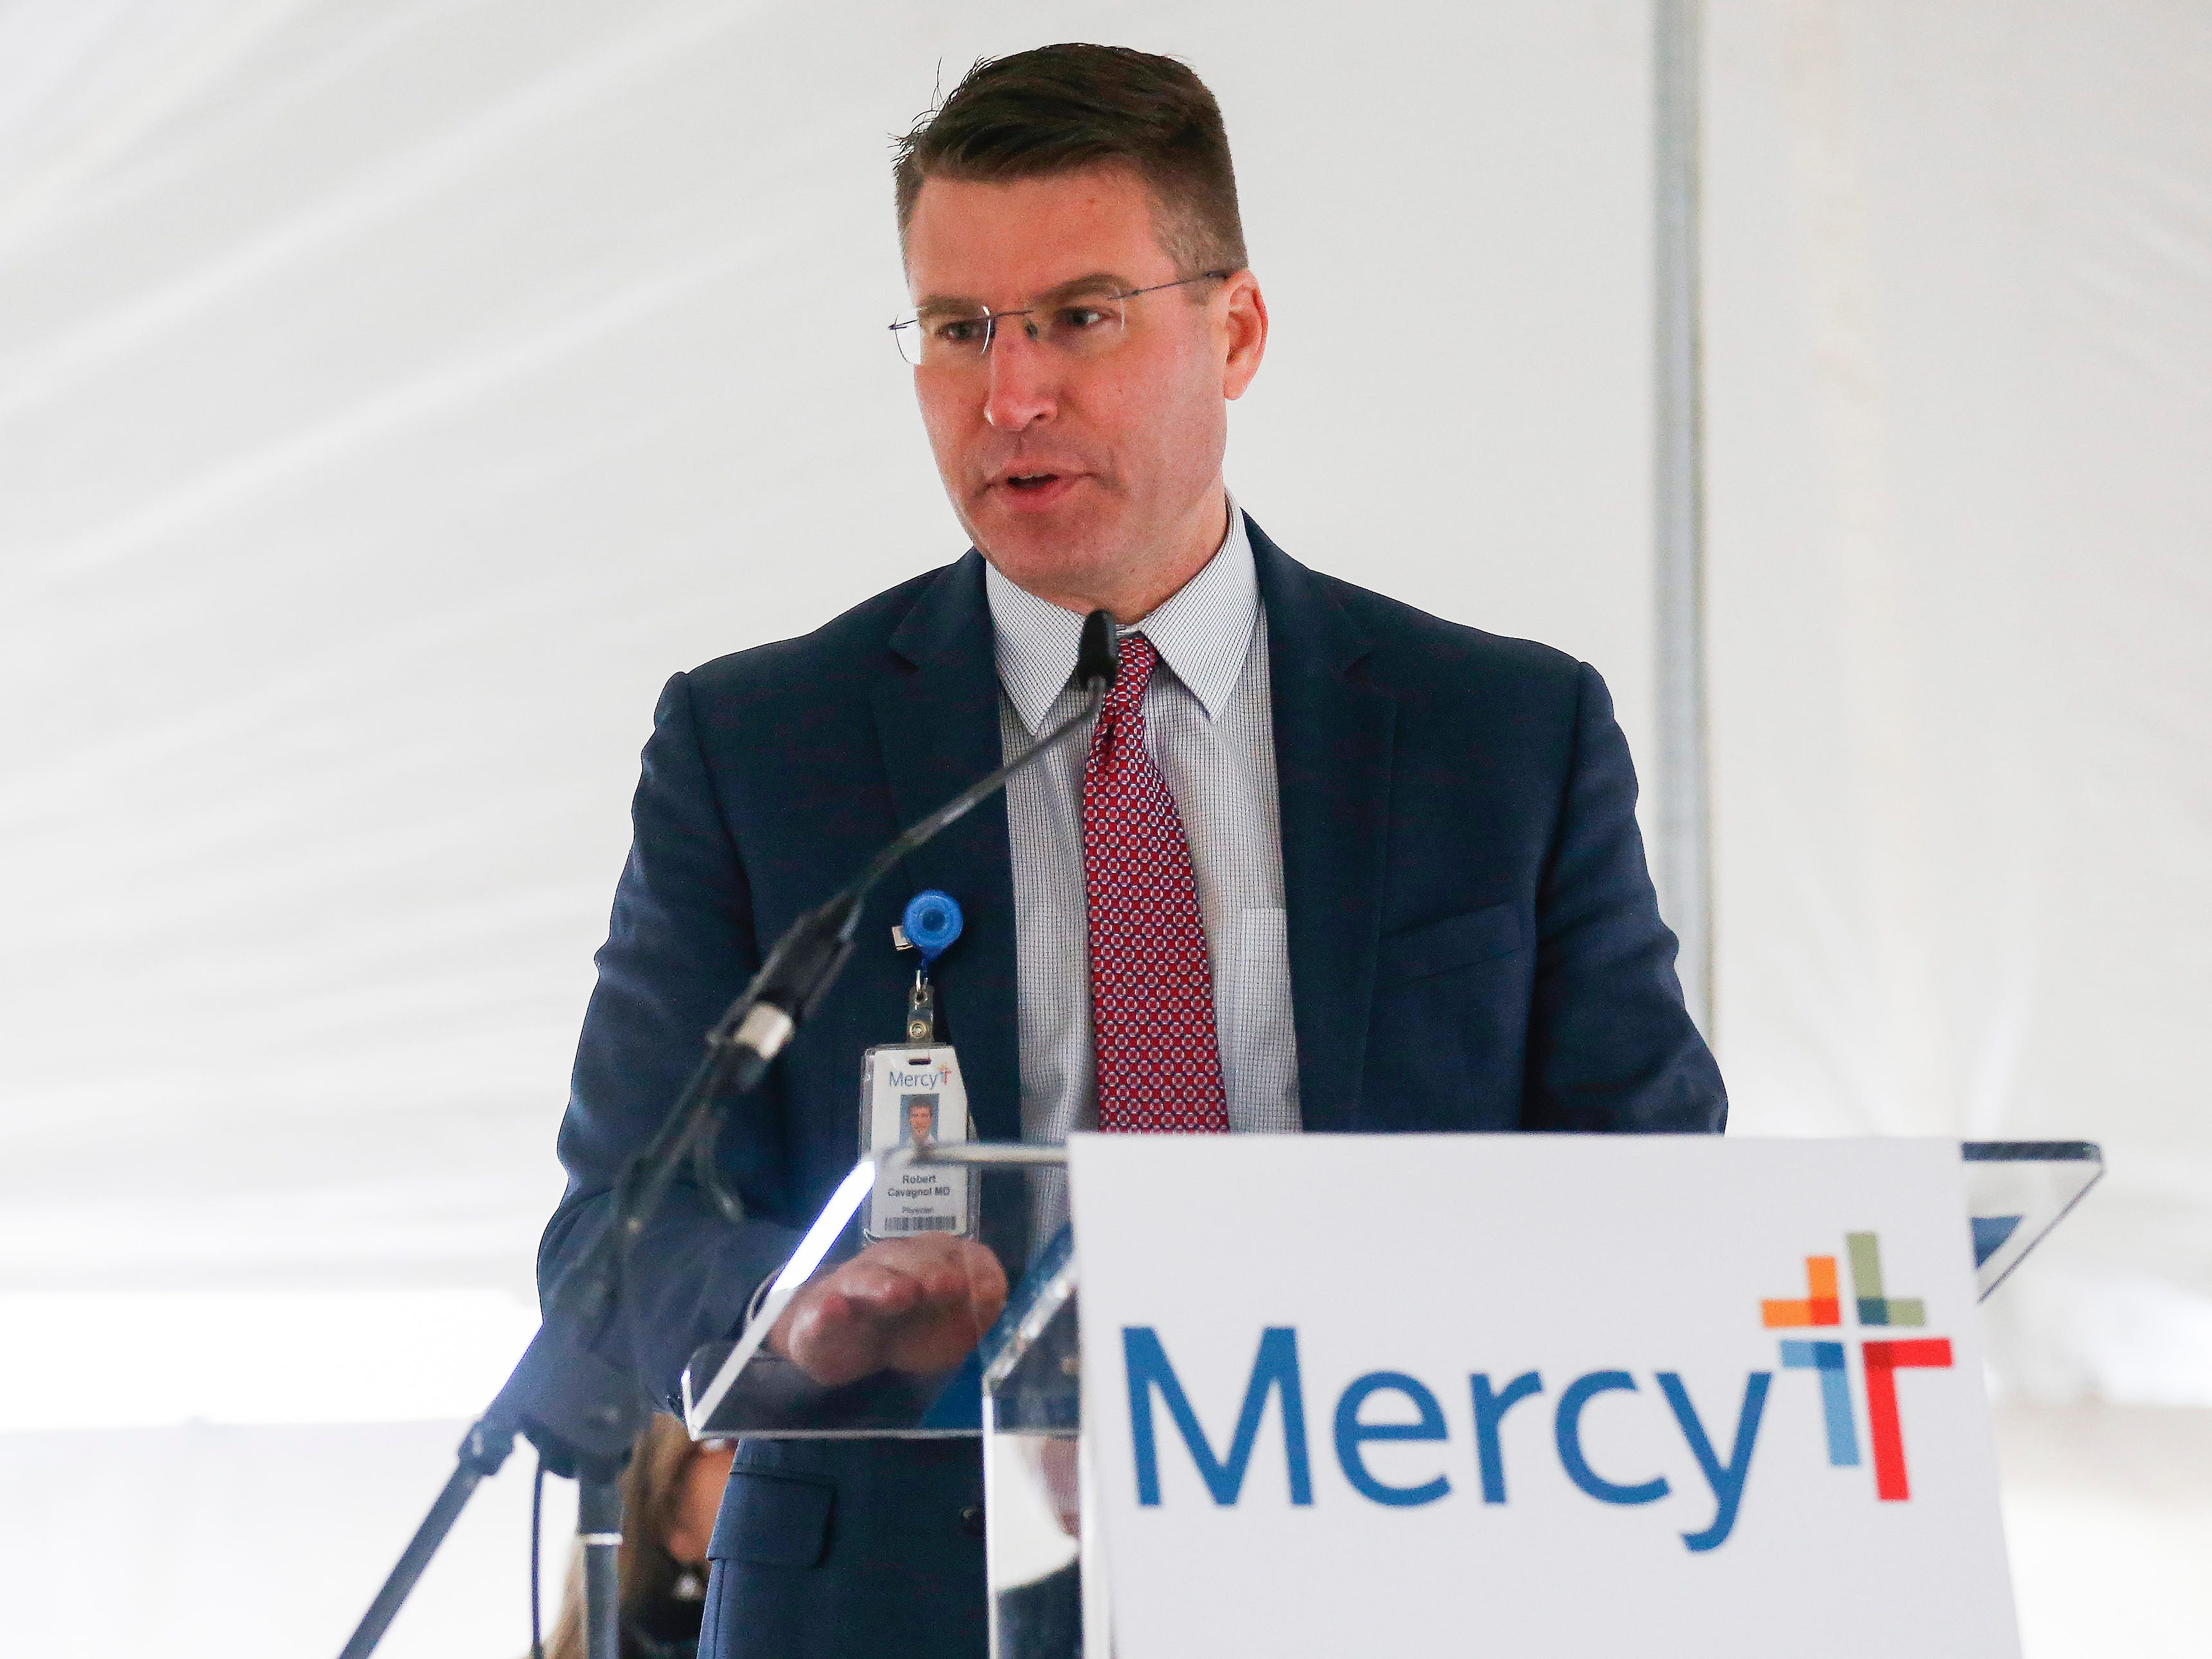 Dr. Robert Cavagnol, Mercy Clinic President, speaks during the groundbreaking and blessing for the new Mercy clinic which will be located at Republic Road and Scenic Avenue.